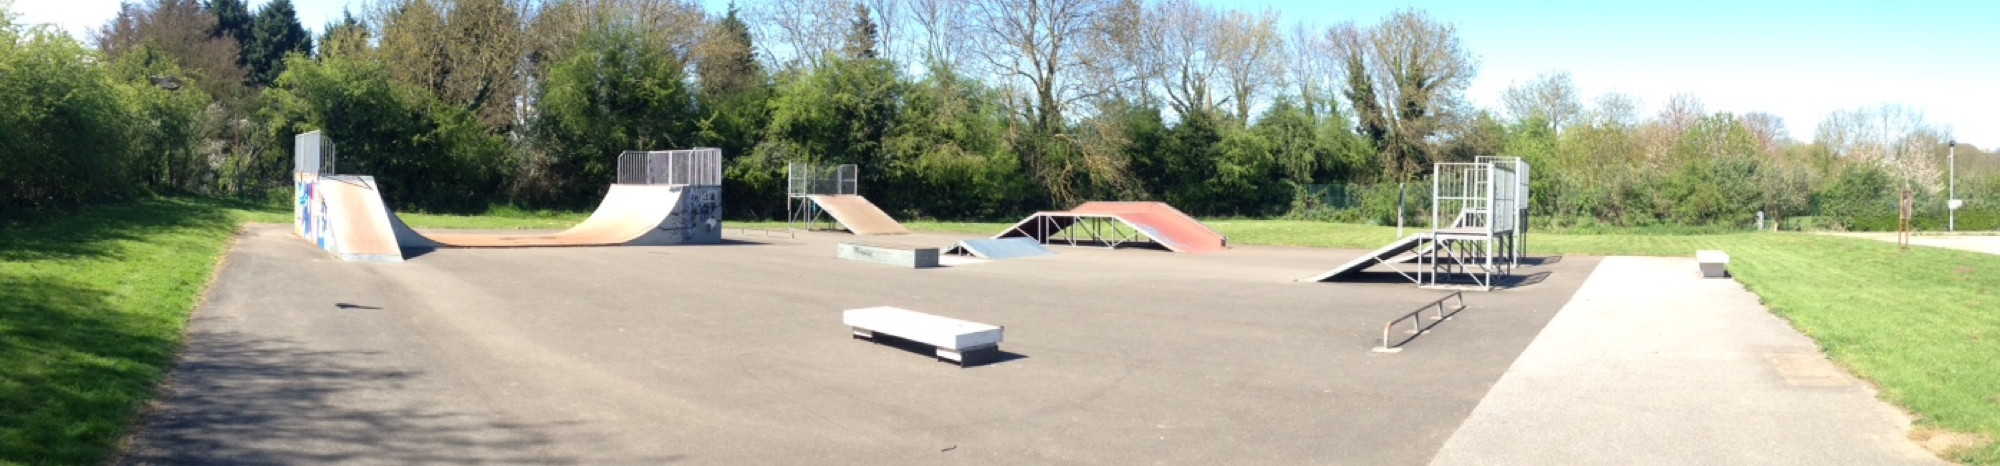 Southwell outdoor skatepark nottingham image one showing the street area.